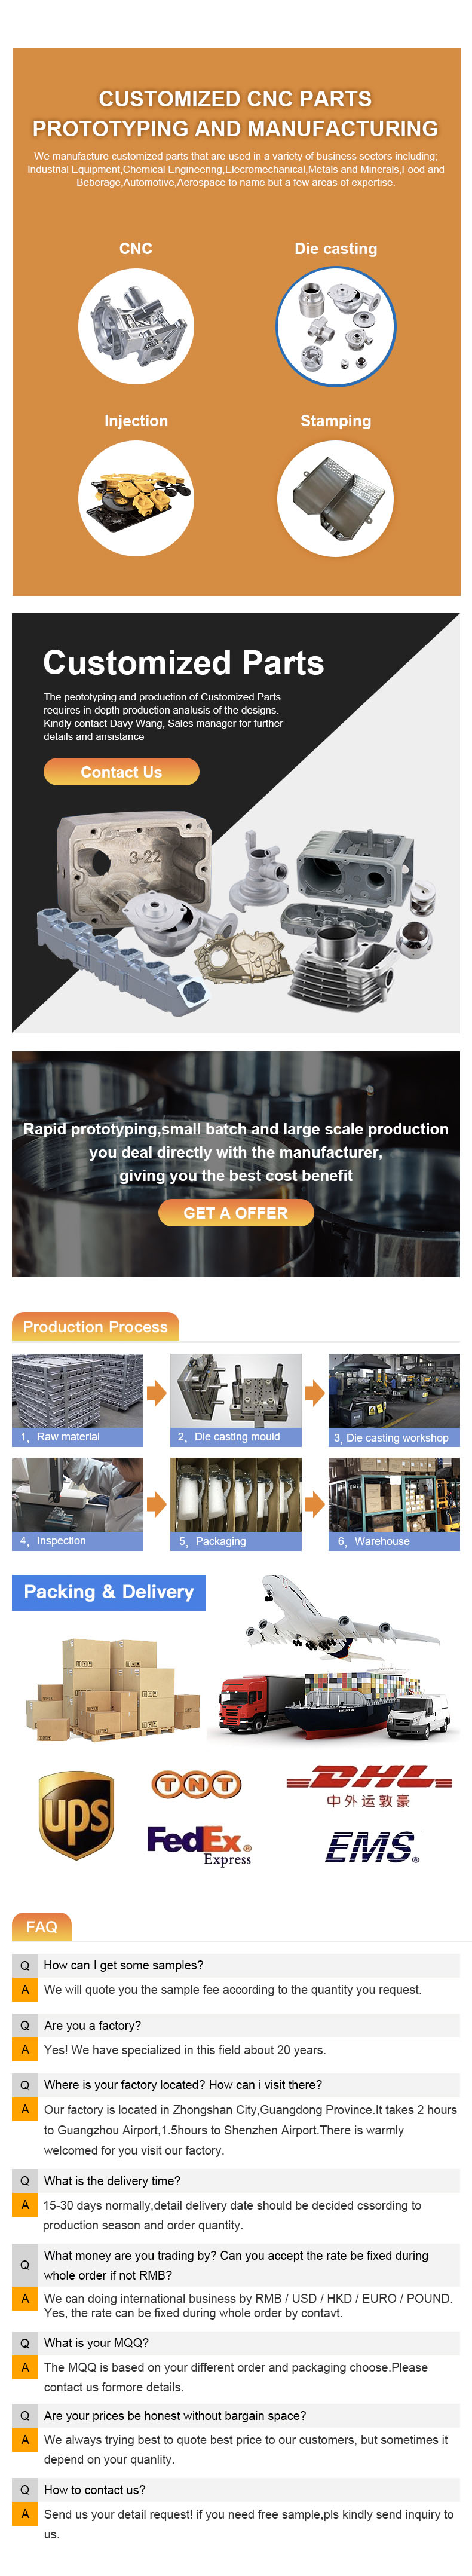 pressure die casting process,CNC MACHINING PARTS,PRECISION CNC MACHINING PARTS,CNC ALUMINUM PARTS,Machined Products,CNC Machined Products,BoYang Hardware Products